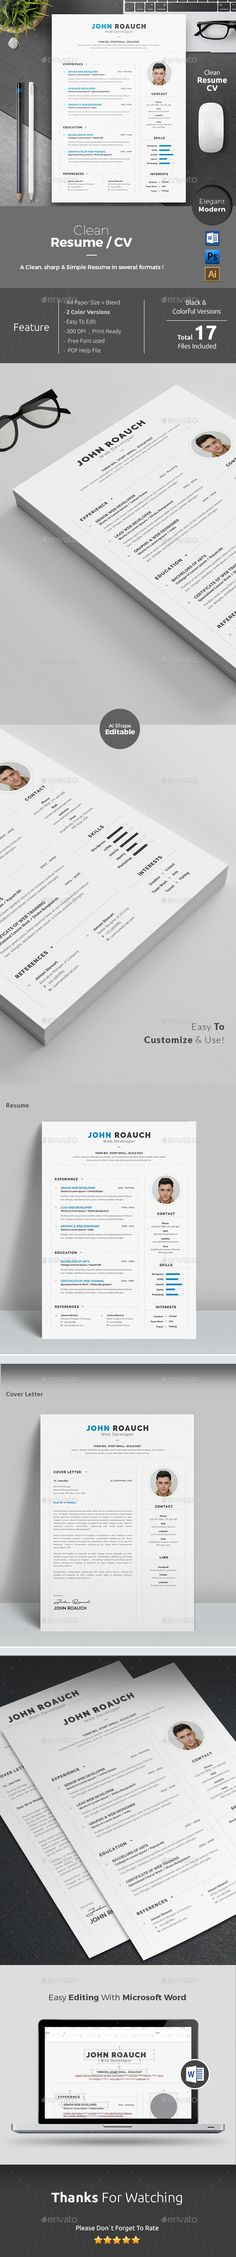 Blue And Black Resume  Skins  Clean Design